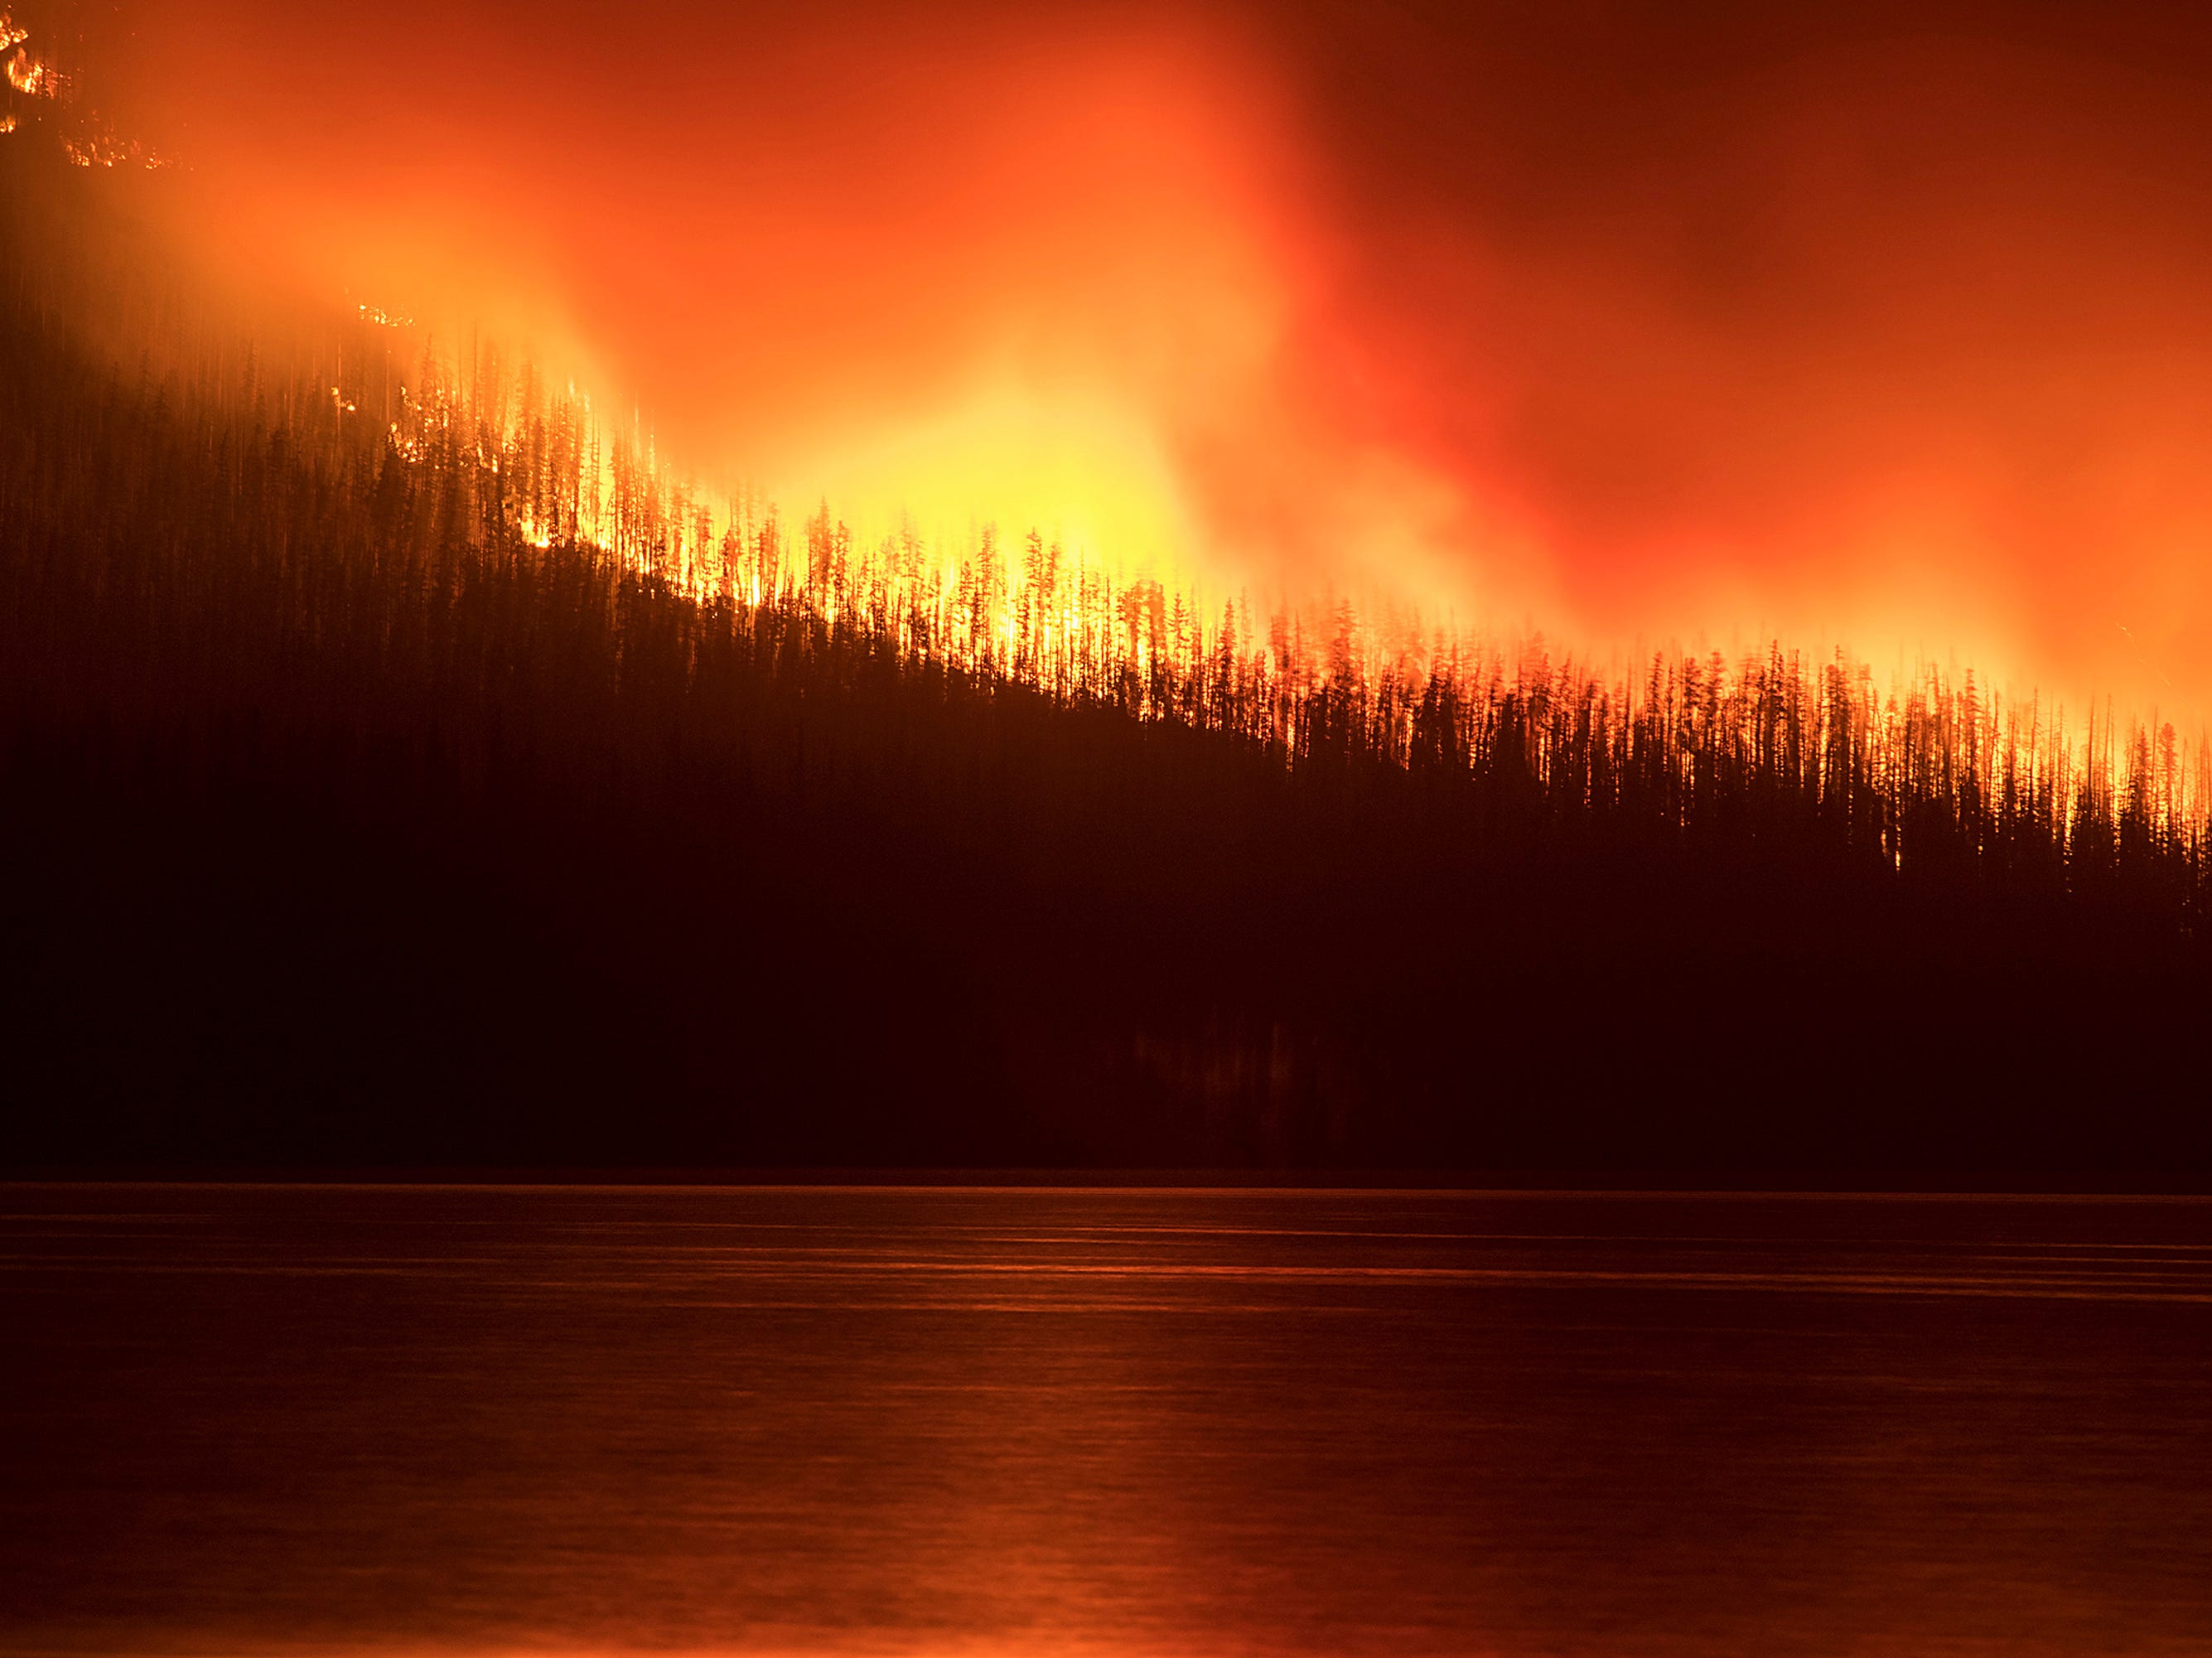 In this photo taken Sunday, Aug. 12, 2018, a fire burns next to Lake McDonald in Glacier National Park in northwest Montana. The fire, which was started by lightning on Saturday night, has forced the evacuation of the Lake McDonald Lodge and a nearby campground. (Chris Peterson/Hungry Horse News via AP)